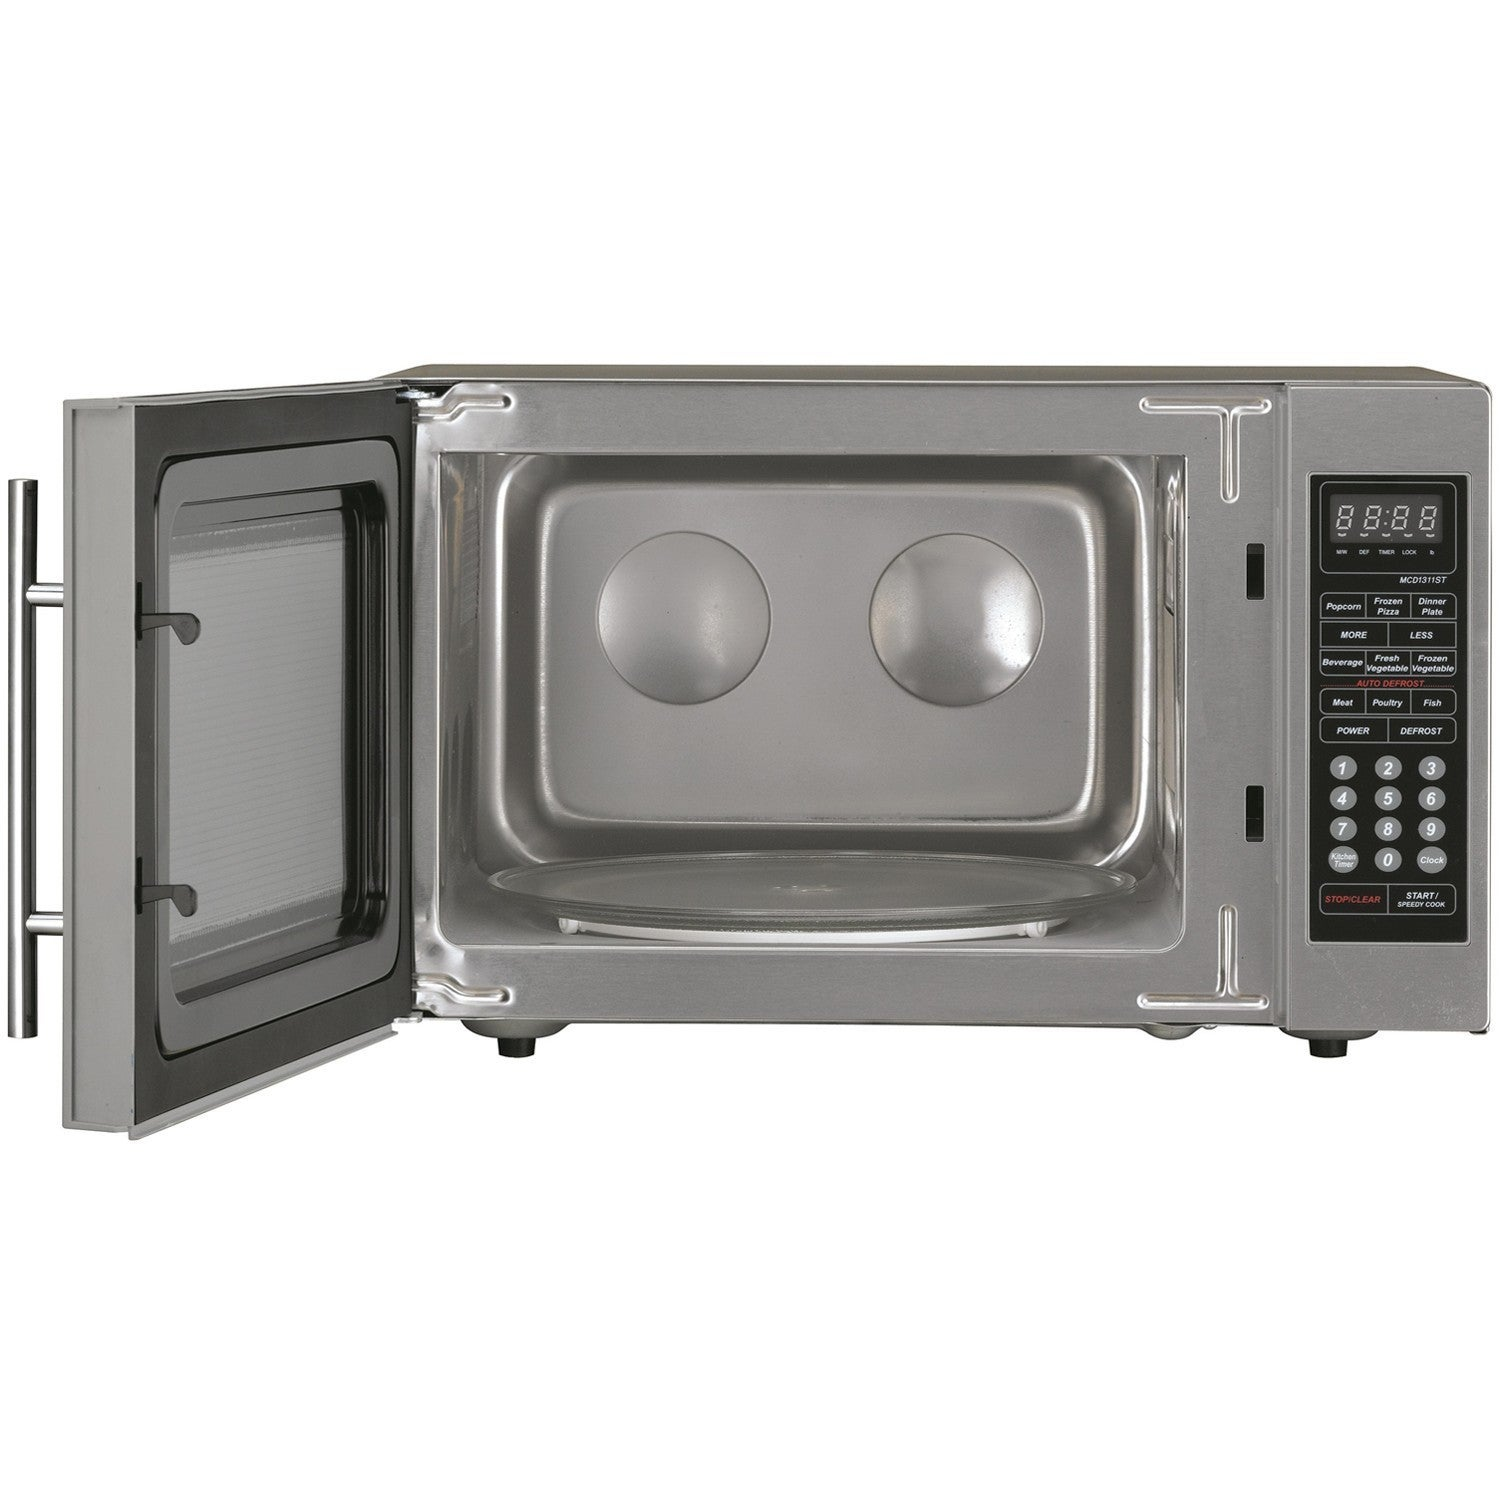 Magic Chef Mcd1311st 1 3 Cu Ft Countertop Microwave Oven Free Shipping Today 17557994